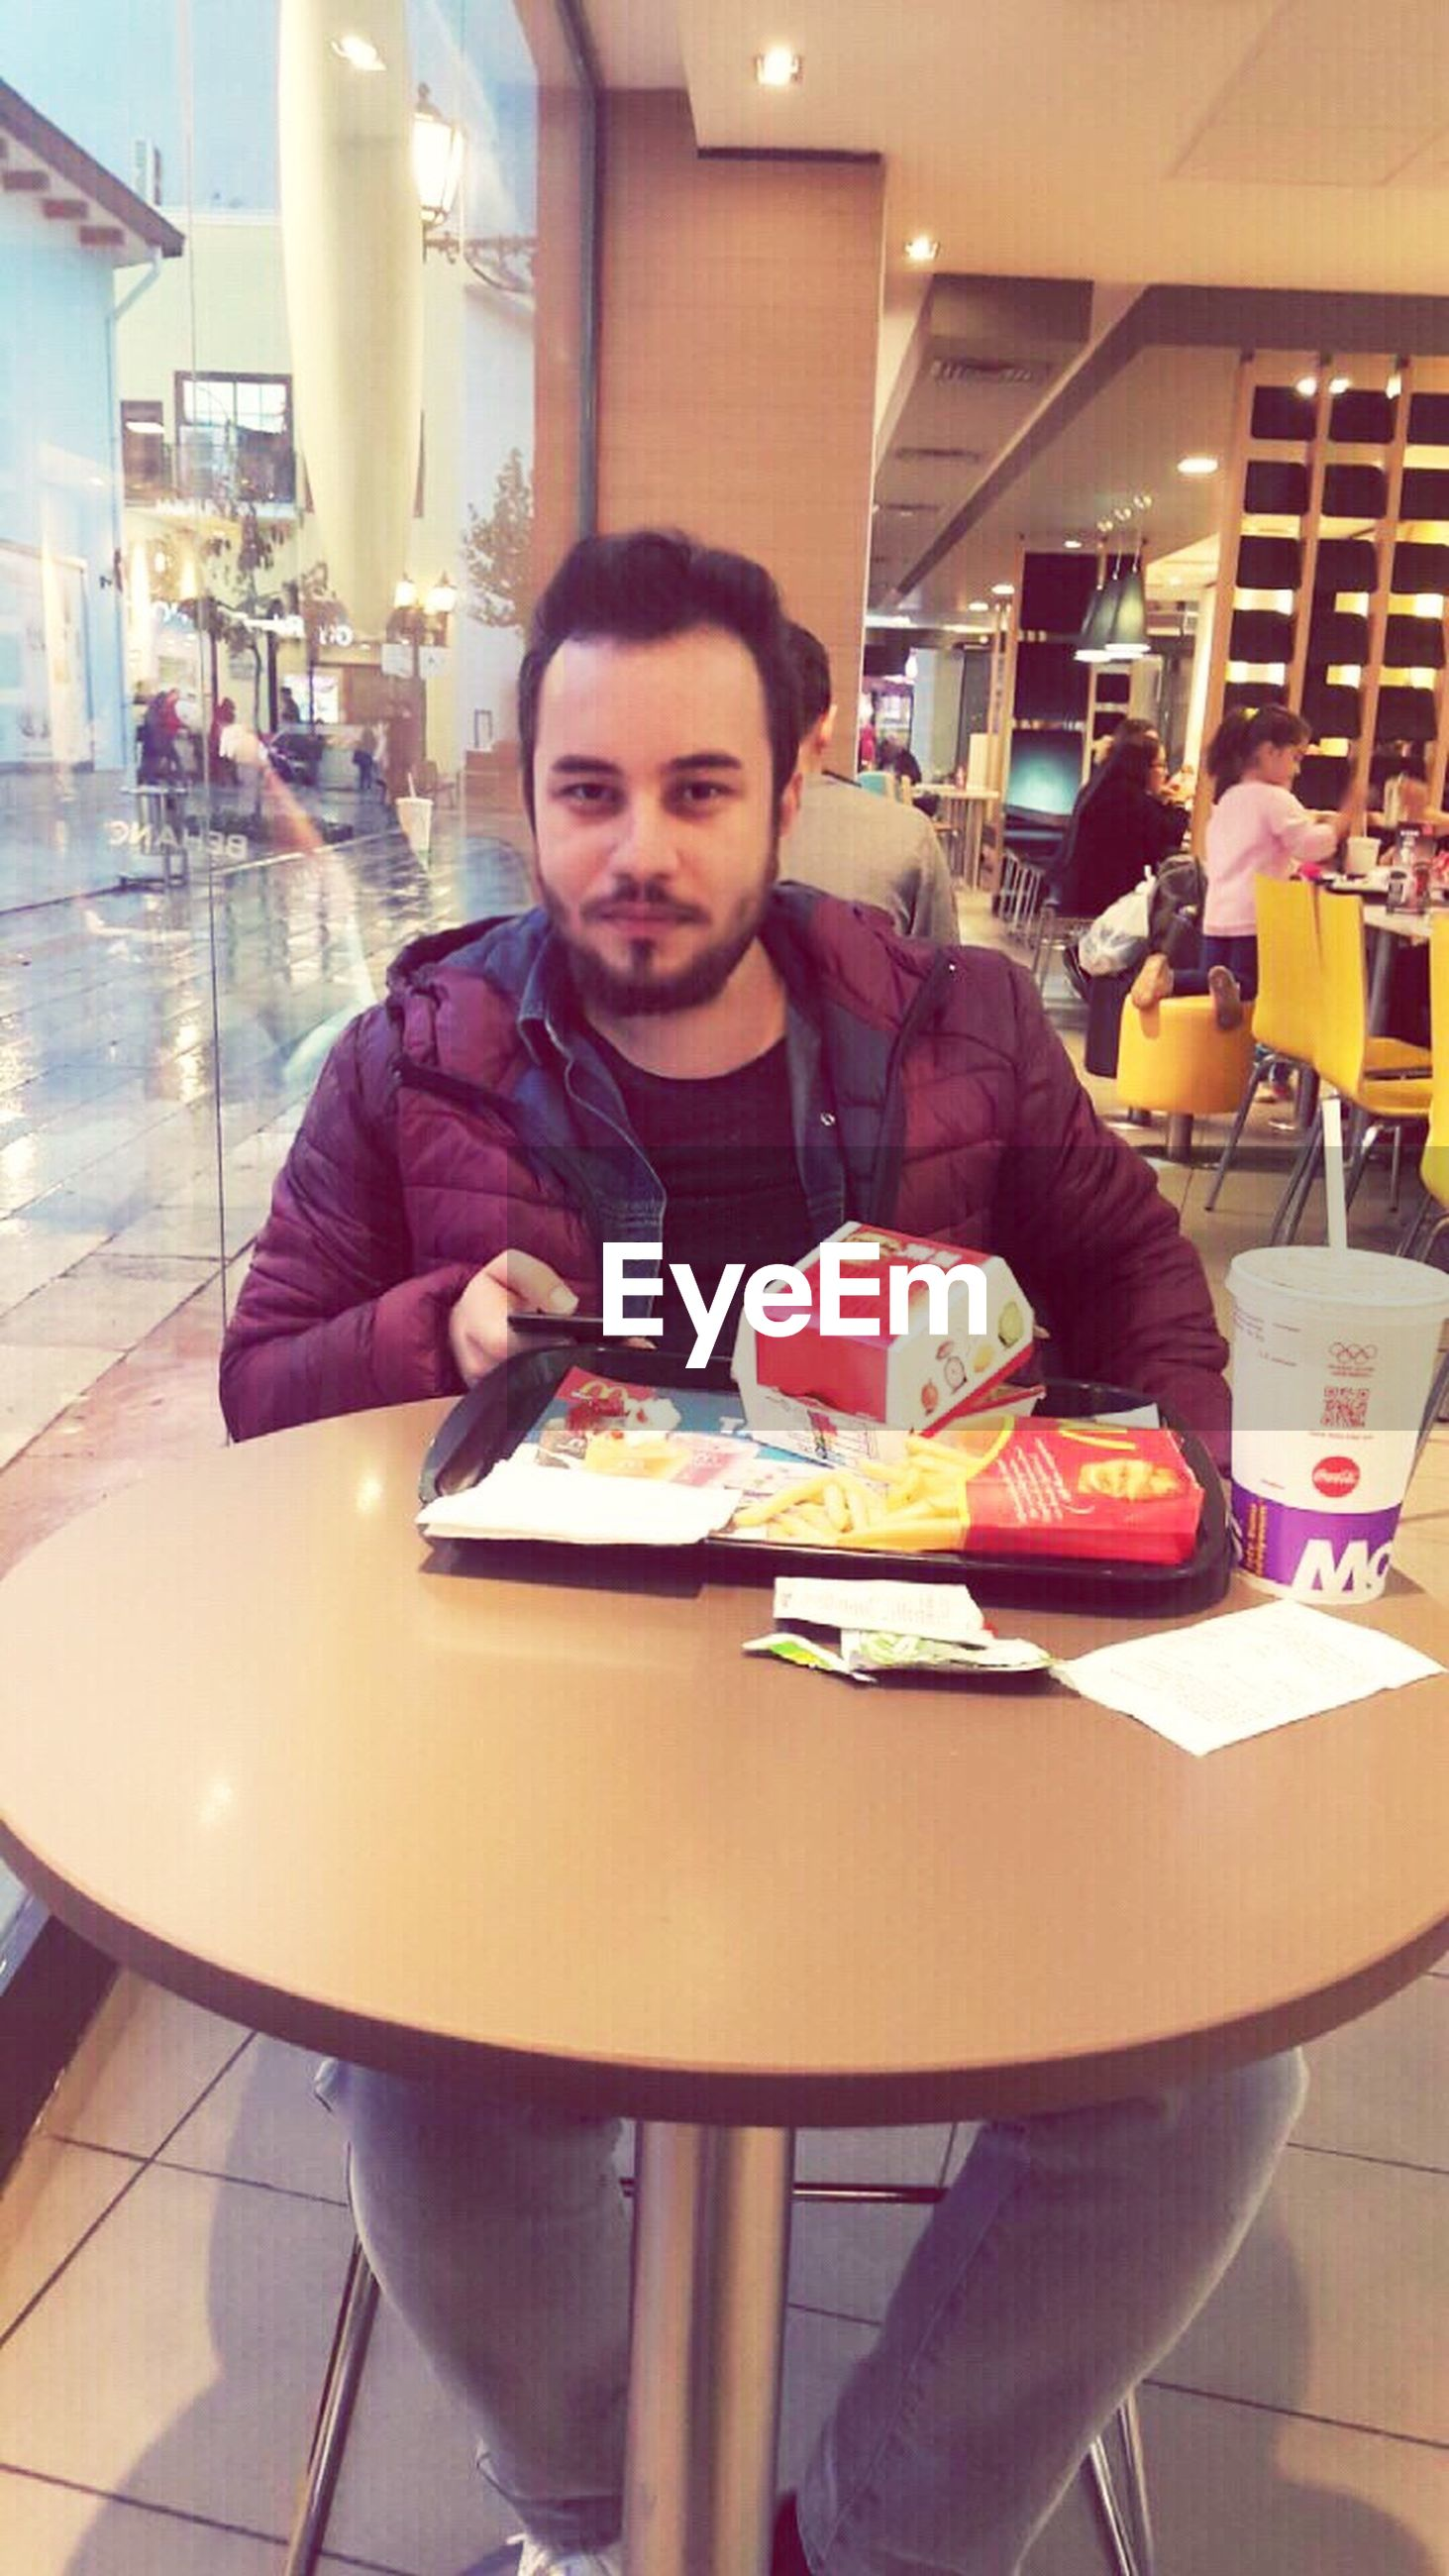 looking at camera, portrait, smiling, one person, food, front view, unhealthy eating, happiness, restaurant, table, snack, people, serving food and drinks, cheerful, city, real people, standing, fast food, adults only, indoors, adult, young adult, one man only, only men, ice cream parlor, day